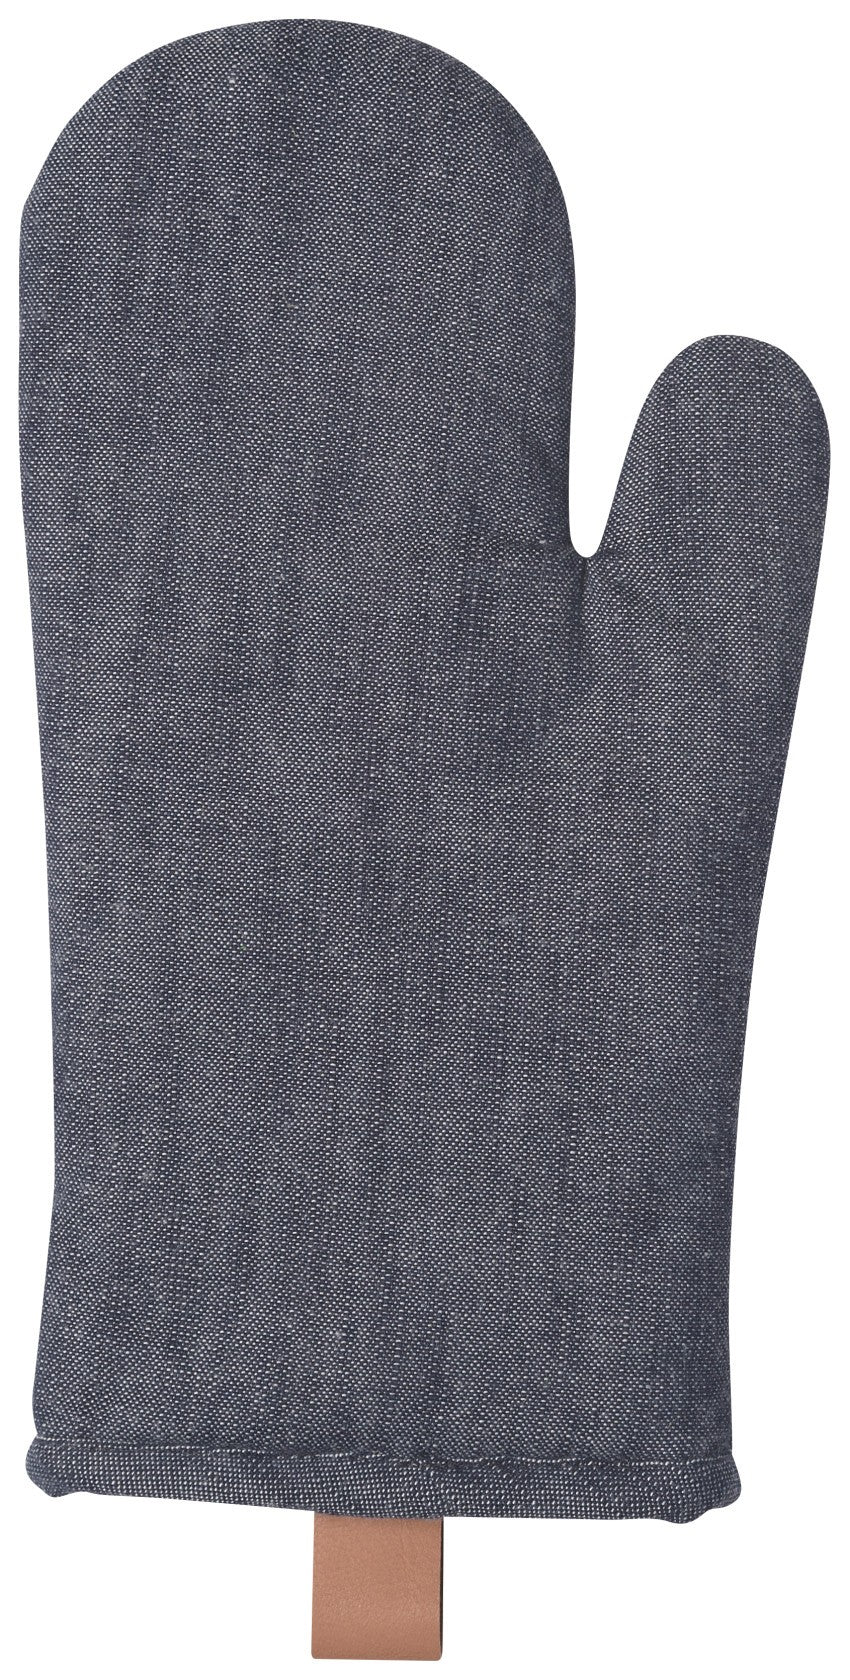 Now Designs - Renew Oven Mitt, Denim